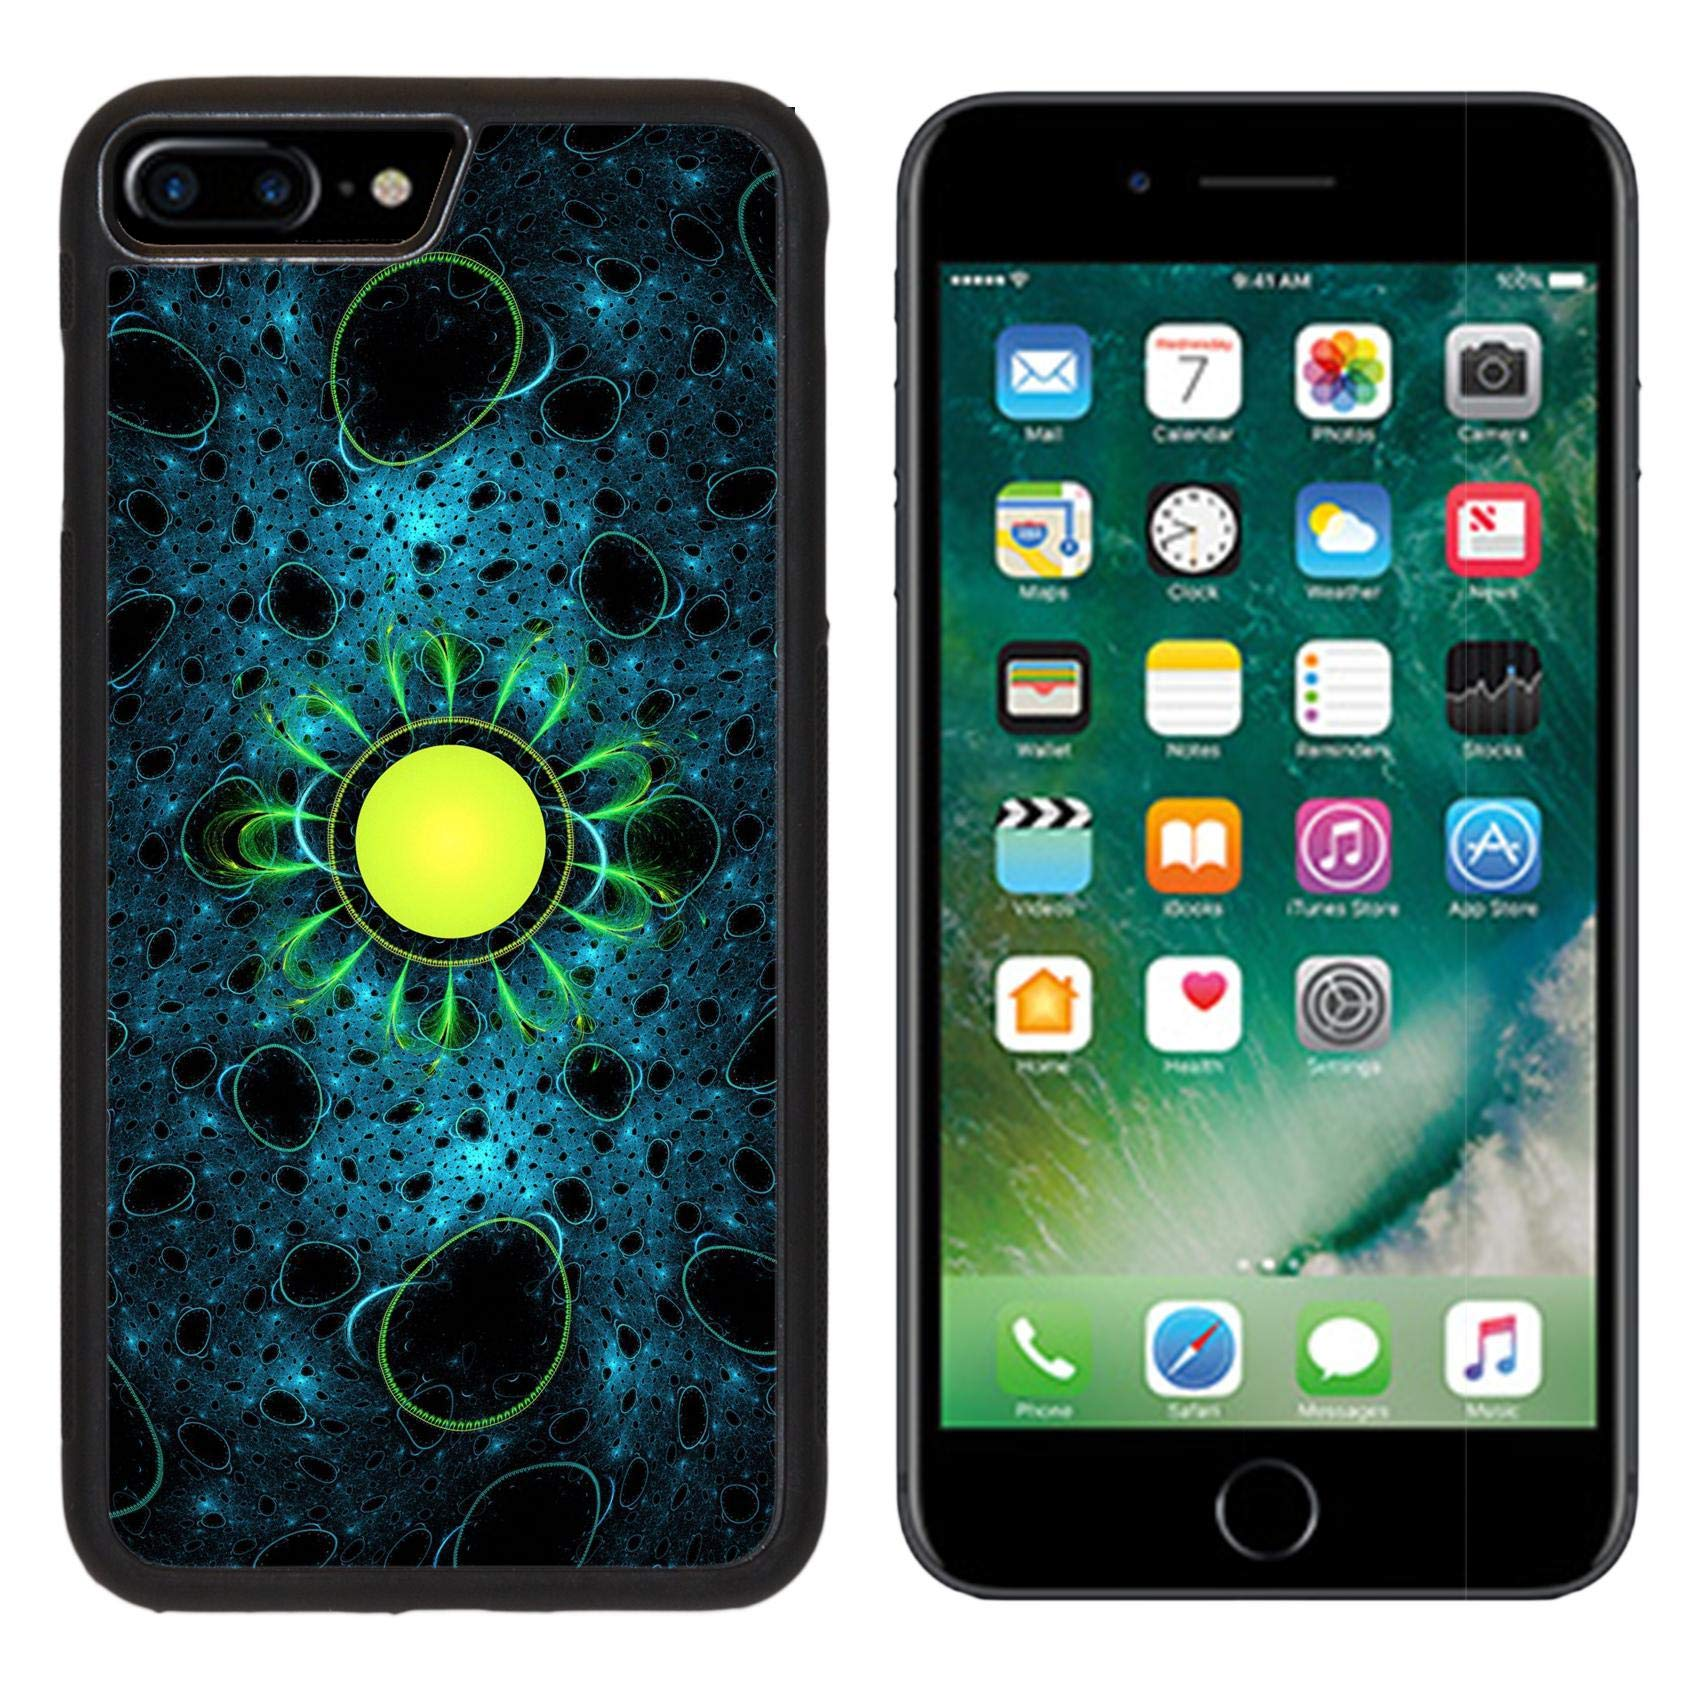 Luxlady iPhone 7 plus Case iPhone 8 plus Case TPU Silicone Bumper Shockproof Anti-Scratch Resistant Hard Tempered Glass Cover IMAGE ID: 25728677 Colorful bacterias abstract computer generated fractal